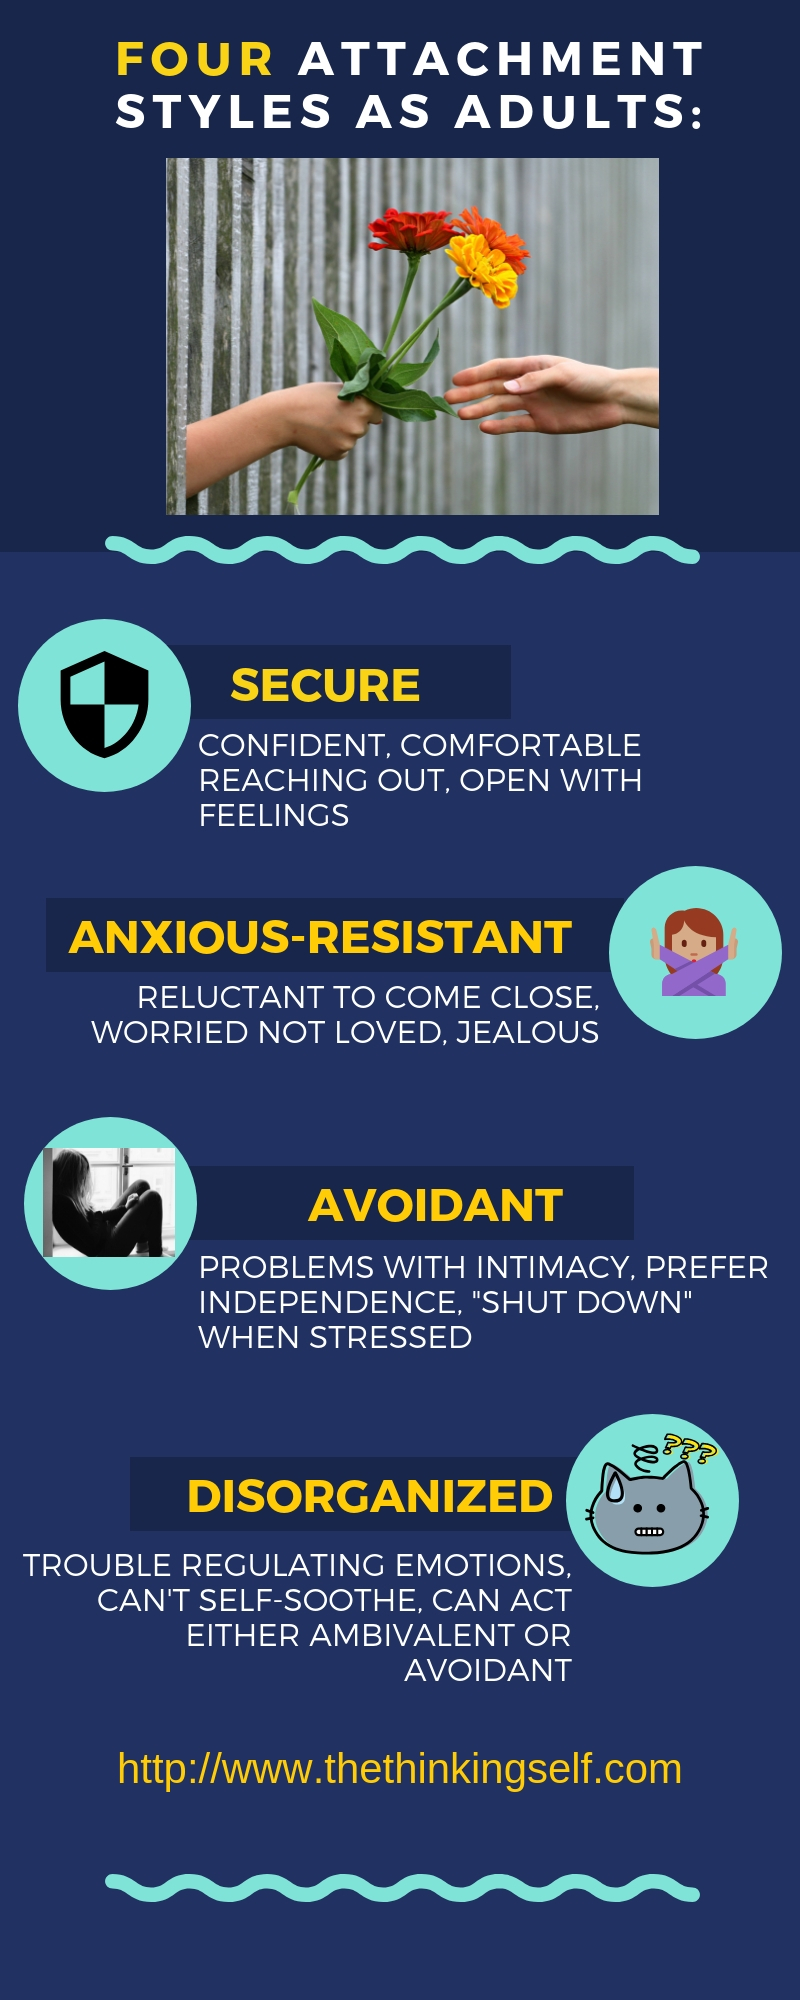 Don't Be So Clingy!: Attachment Styles And Compatibility